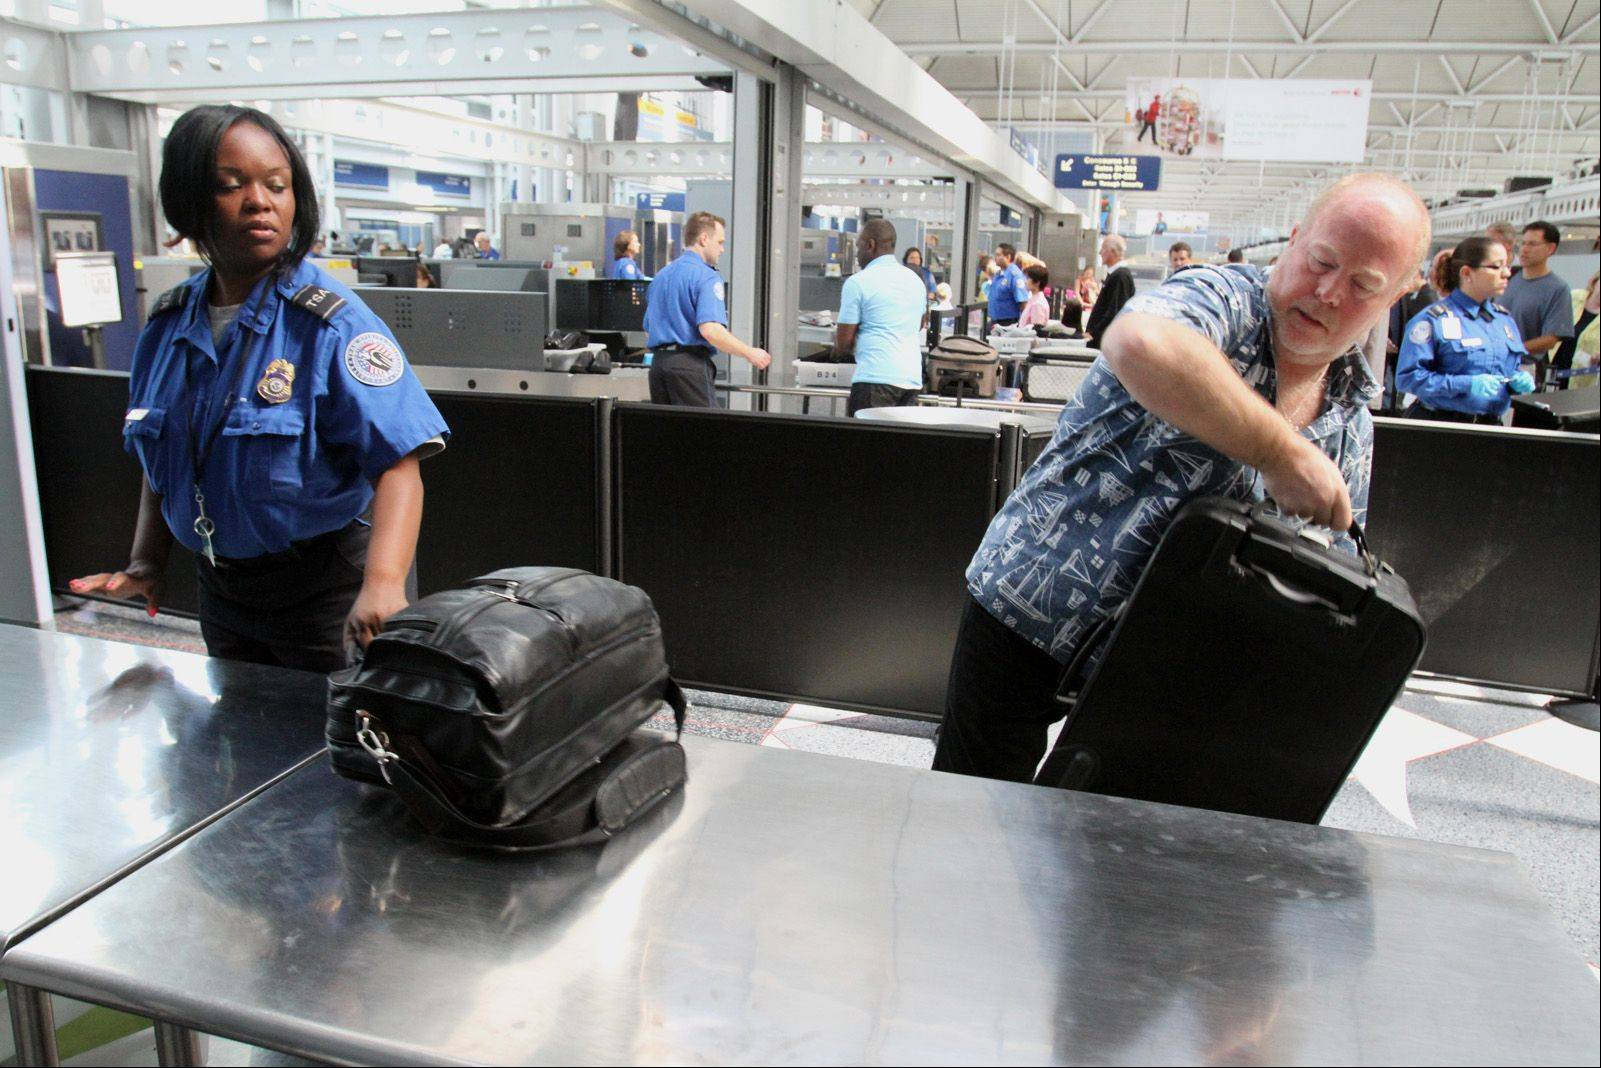 Laurent Perkin of San Diego, with his shoes on, goes through a new streamlined security checkpoint for preapproved travelers at the United Terminal at O'Hare International Airport in Chicago on Wednesday. Perkin was traveling home after business in Chicago.